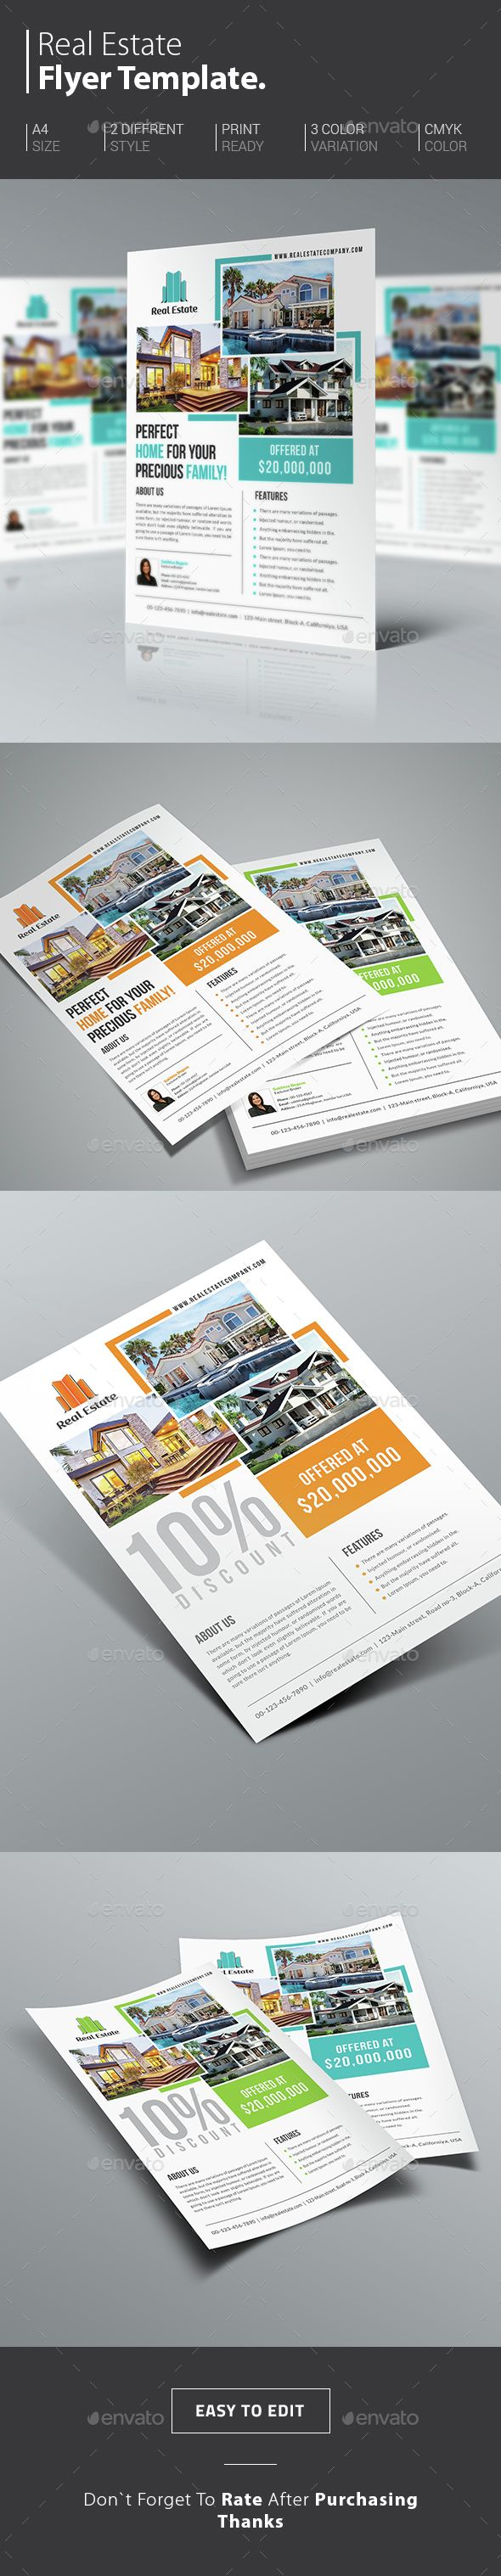 Real Estate Flyer Template PSD. Download here: http://graphicriver.net/item/real-estate-flyer/14643847?ref=ksioks